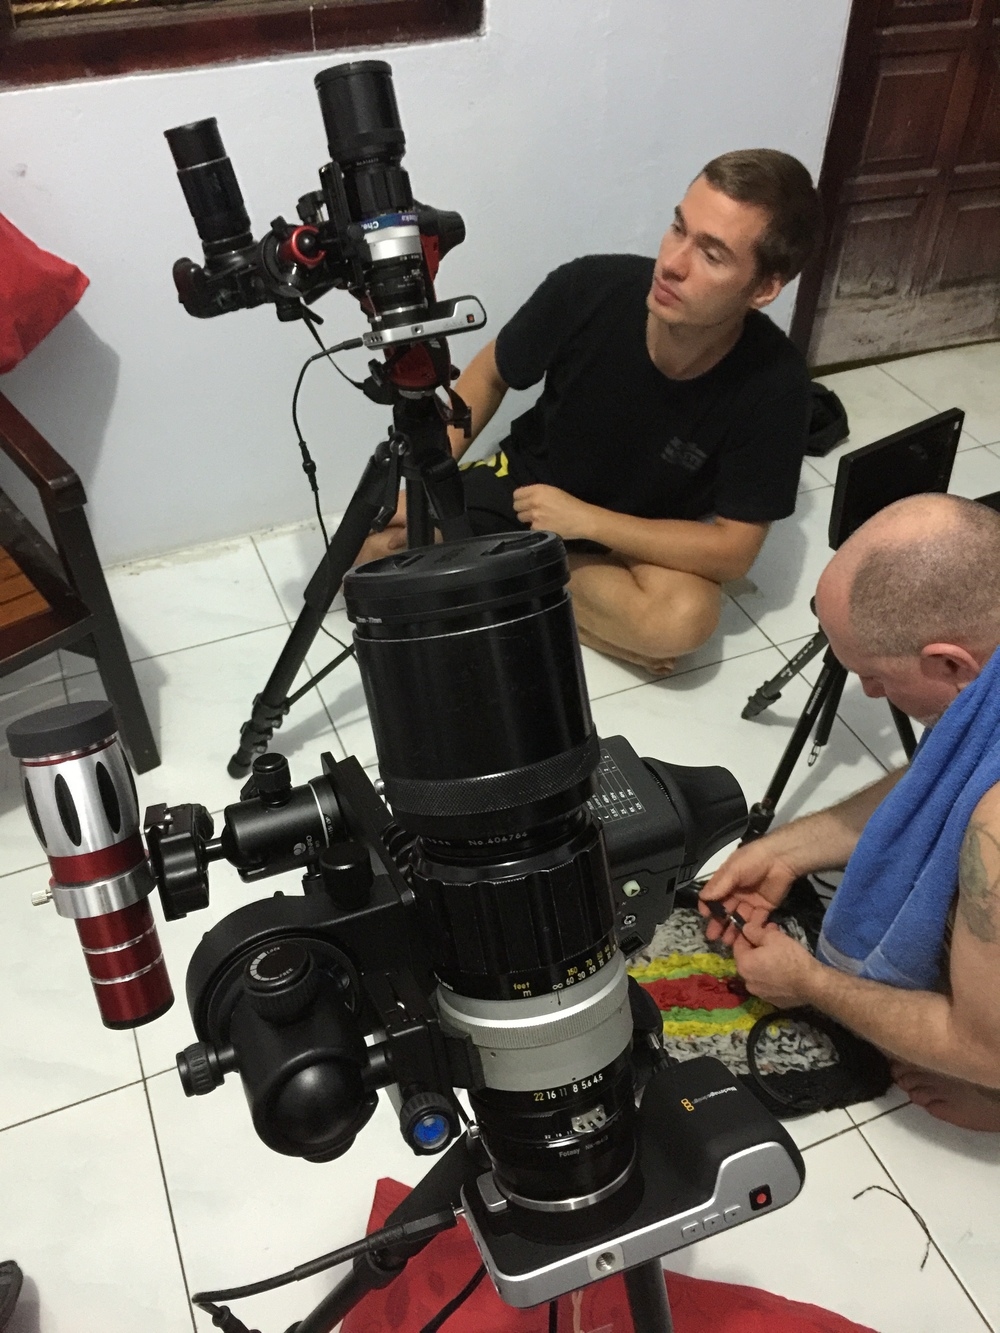 "Andrais and James are seen here preparing the two identical cameras systems in preparation for transporting to our two island locations. Here you can see the identical BlackMagic Design Pocket Cinema Cameras equipped with 300mm Nikor lens. Camera system ONE (seen here in the foreground) also has the 20x iPhone add-on lens. The iPhone is not attached as I was using it to take this picture. One of the drawbacks of using your iPhone (or any other ""smart phone"") to photograph the eclipse is that you will not be able to use your smart phone for all the other photos you'll be wanting to take. Both systems are supported by the SkyWatcher Star Adventurer Tracking Mount which is our mount of choice for the Eclipse Across America project."